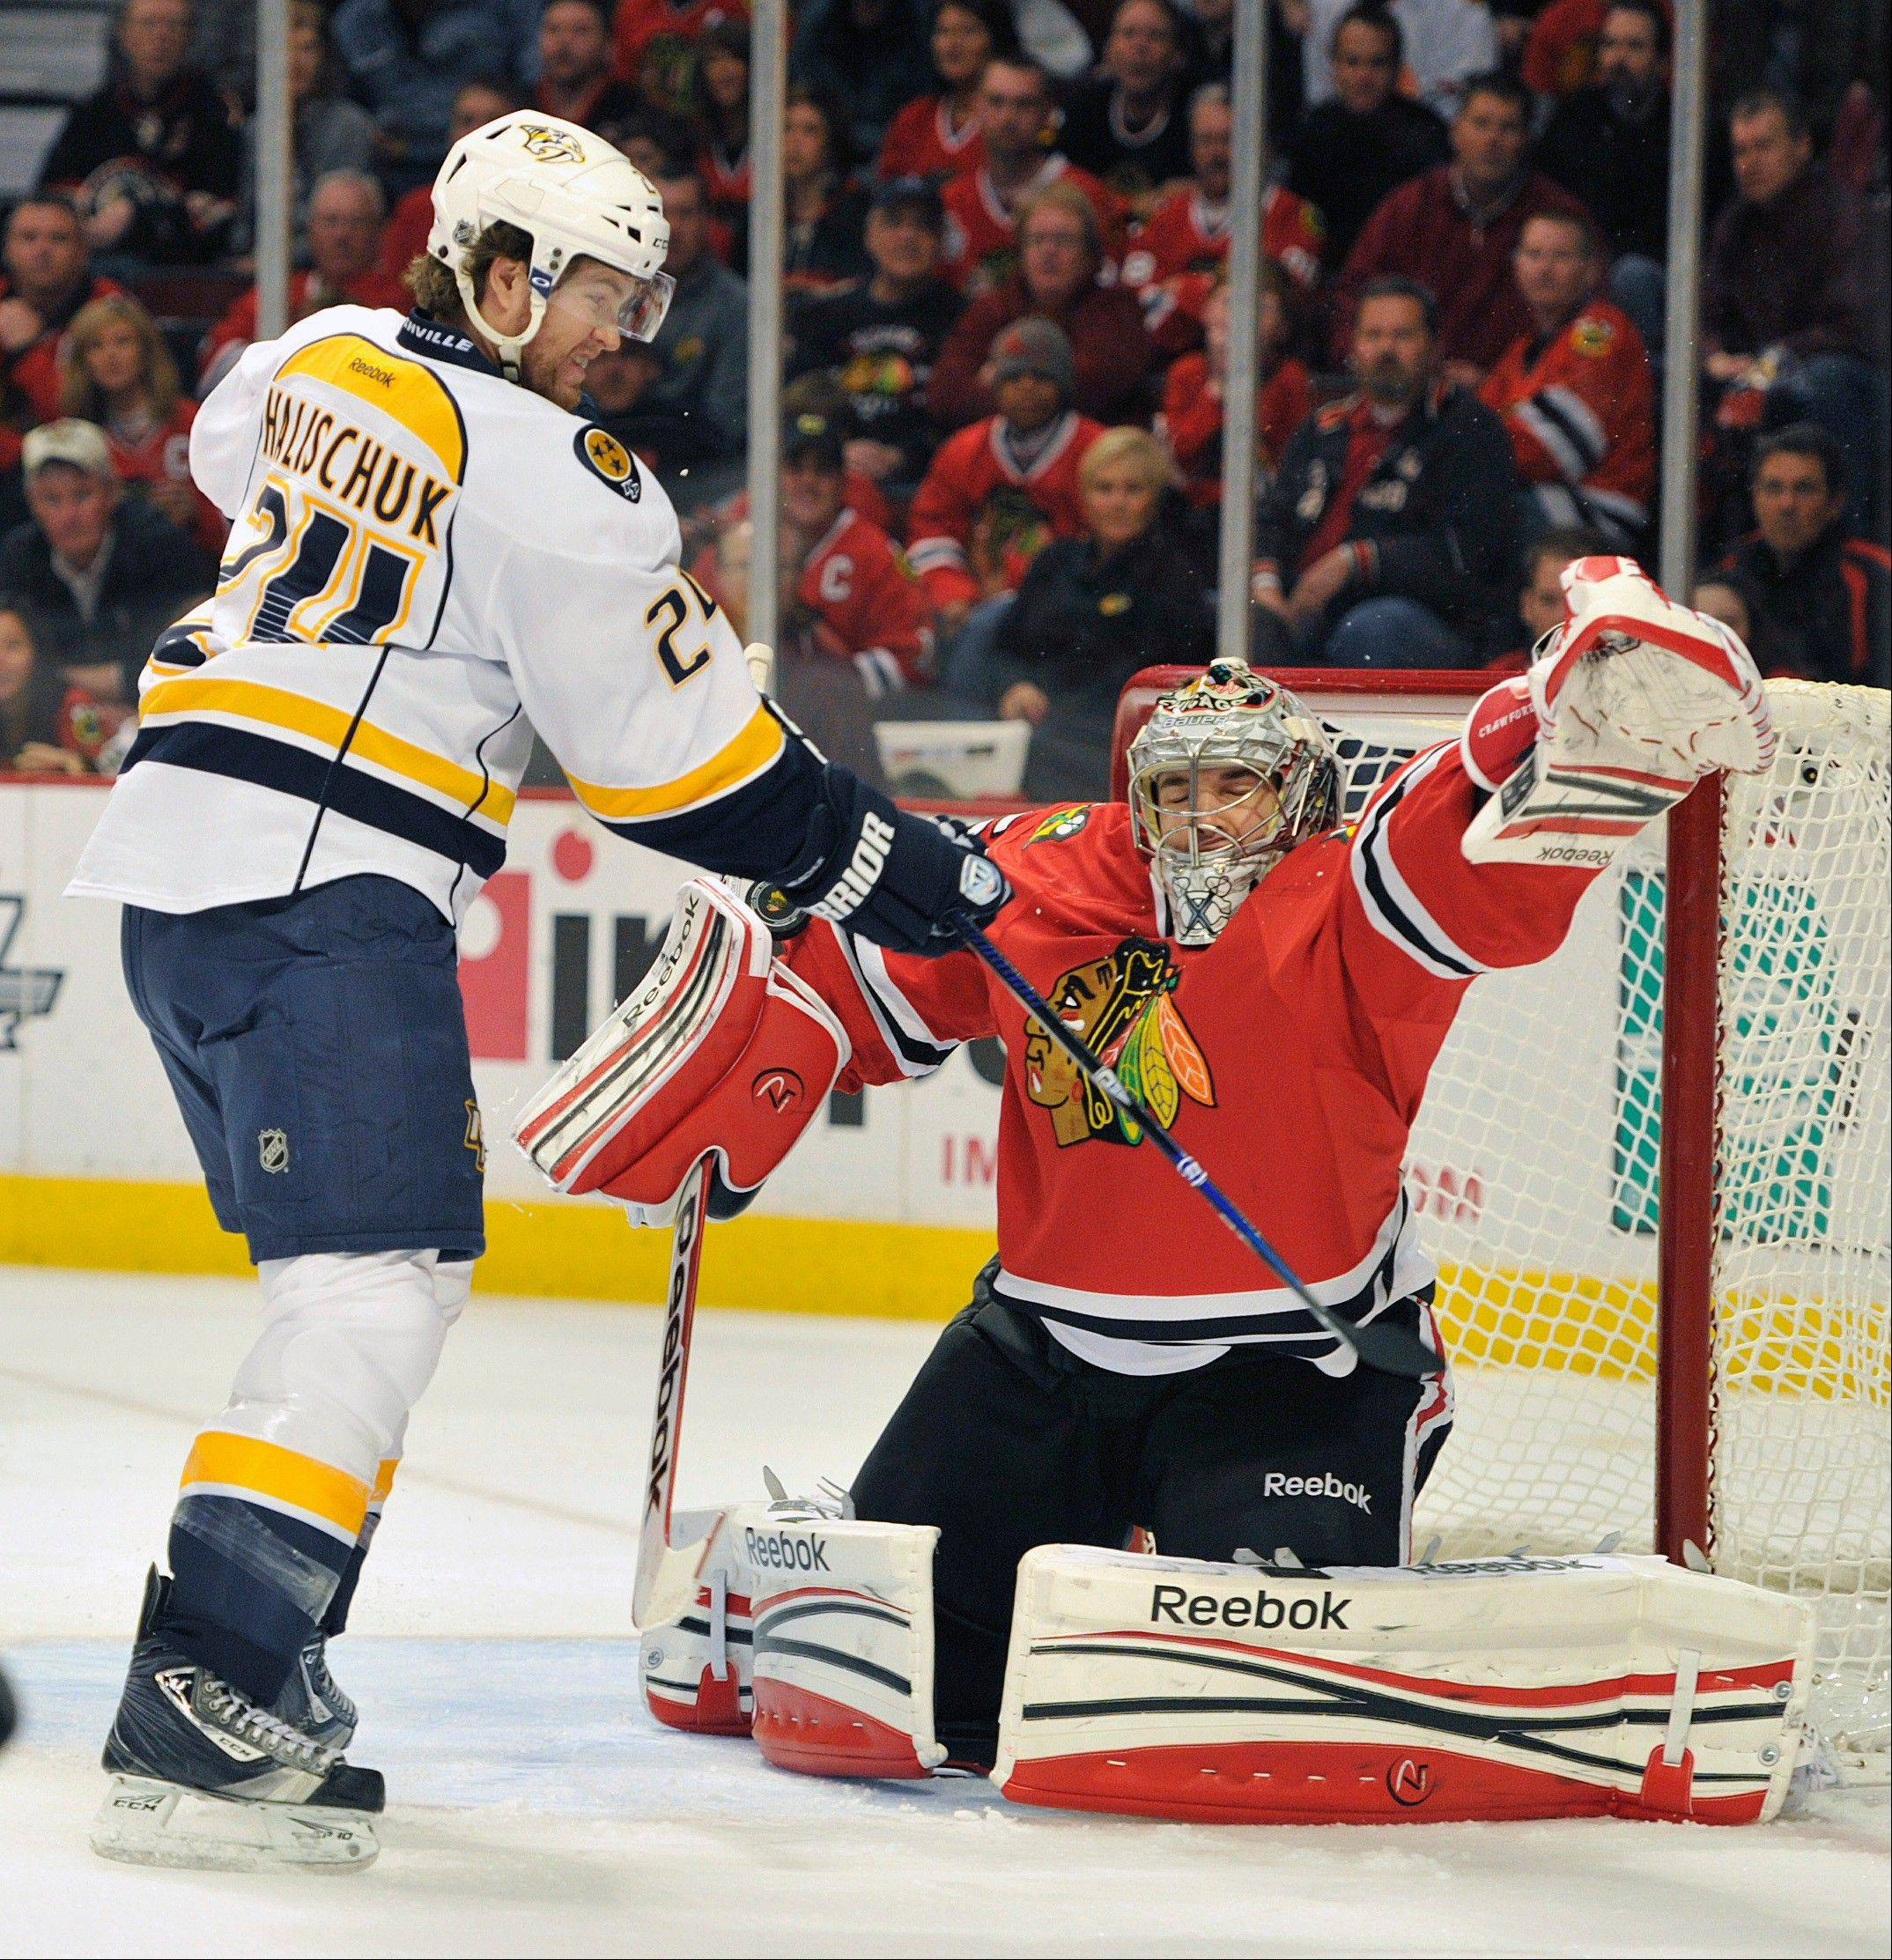 Nashville Predators' Matt Halischuk (24) tips the puck past the Chicago Blackhawks' Corey Crawford to score during the first period of an NHL hockey game on Friday, April 19, 2013, in Chicago.